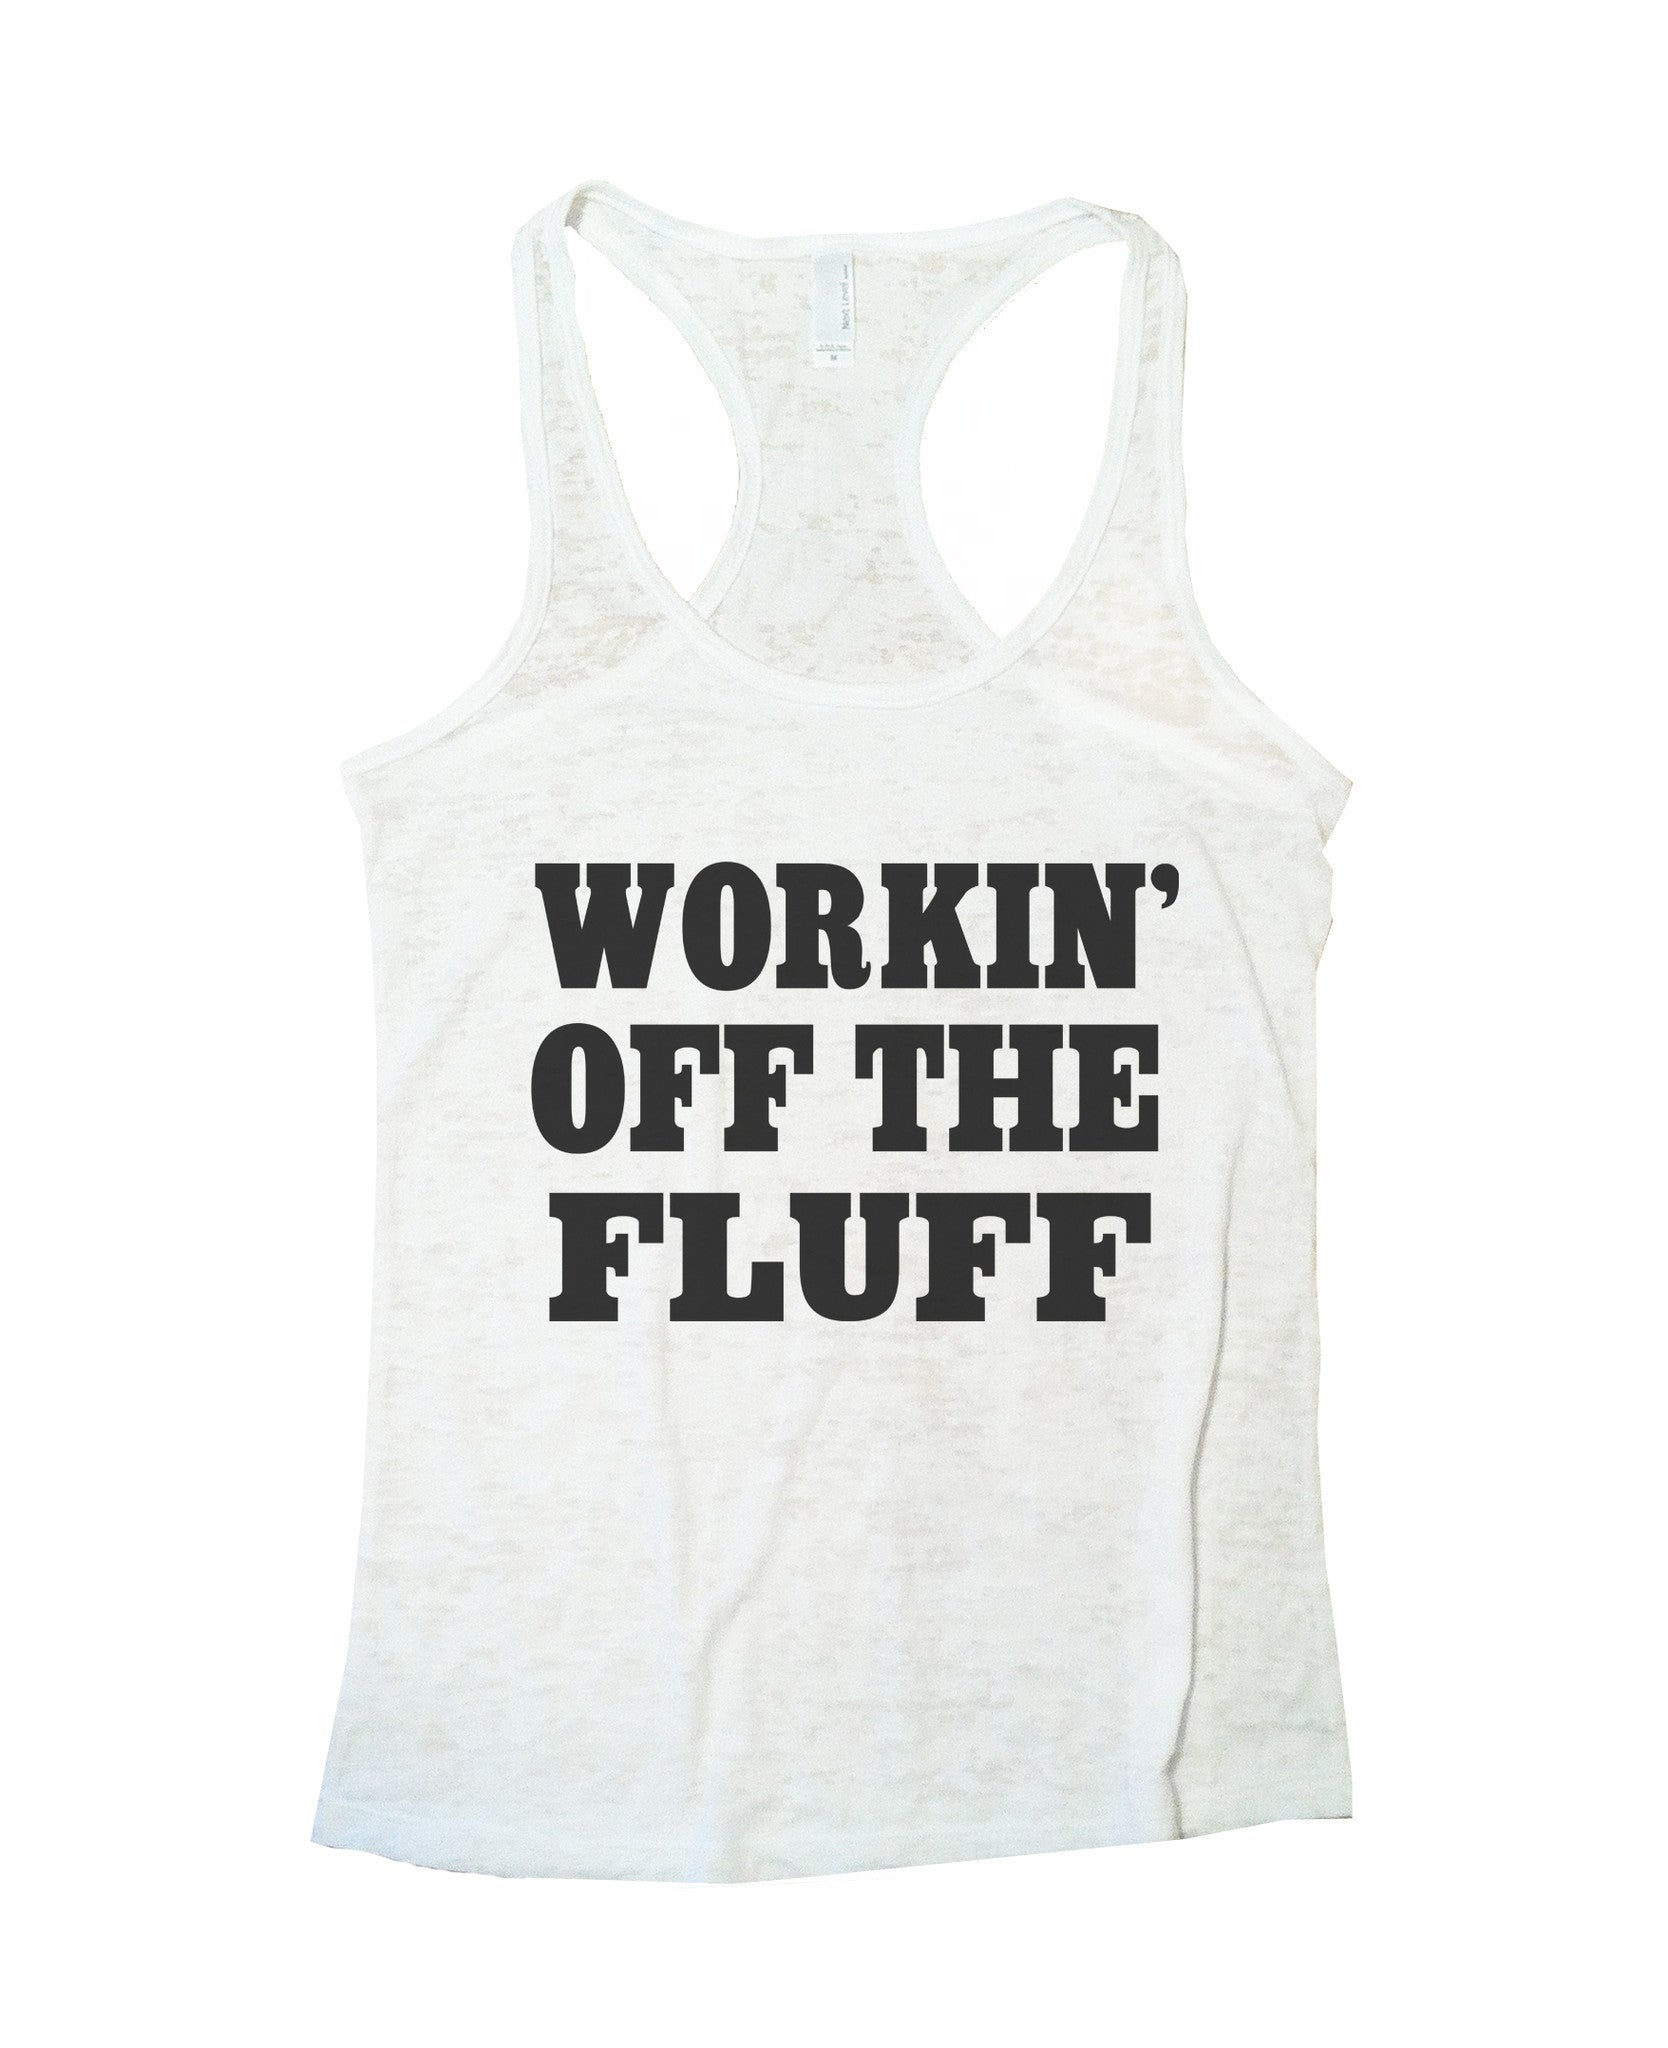 Working Off The Fluff Burnout Tank Top By BurnoutTankTops.com - 688 - Funny Shirts Tank Tops Burnouts and Triblends  - 5